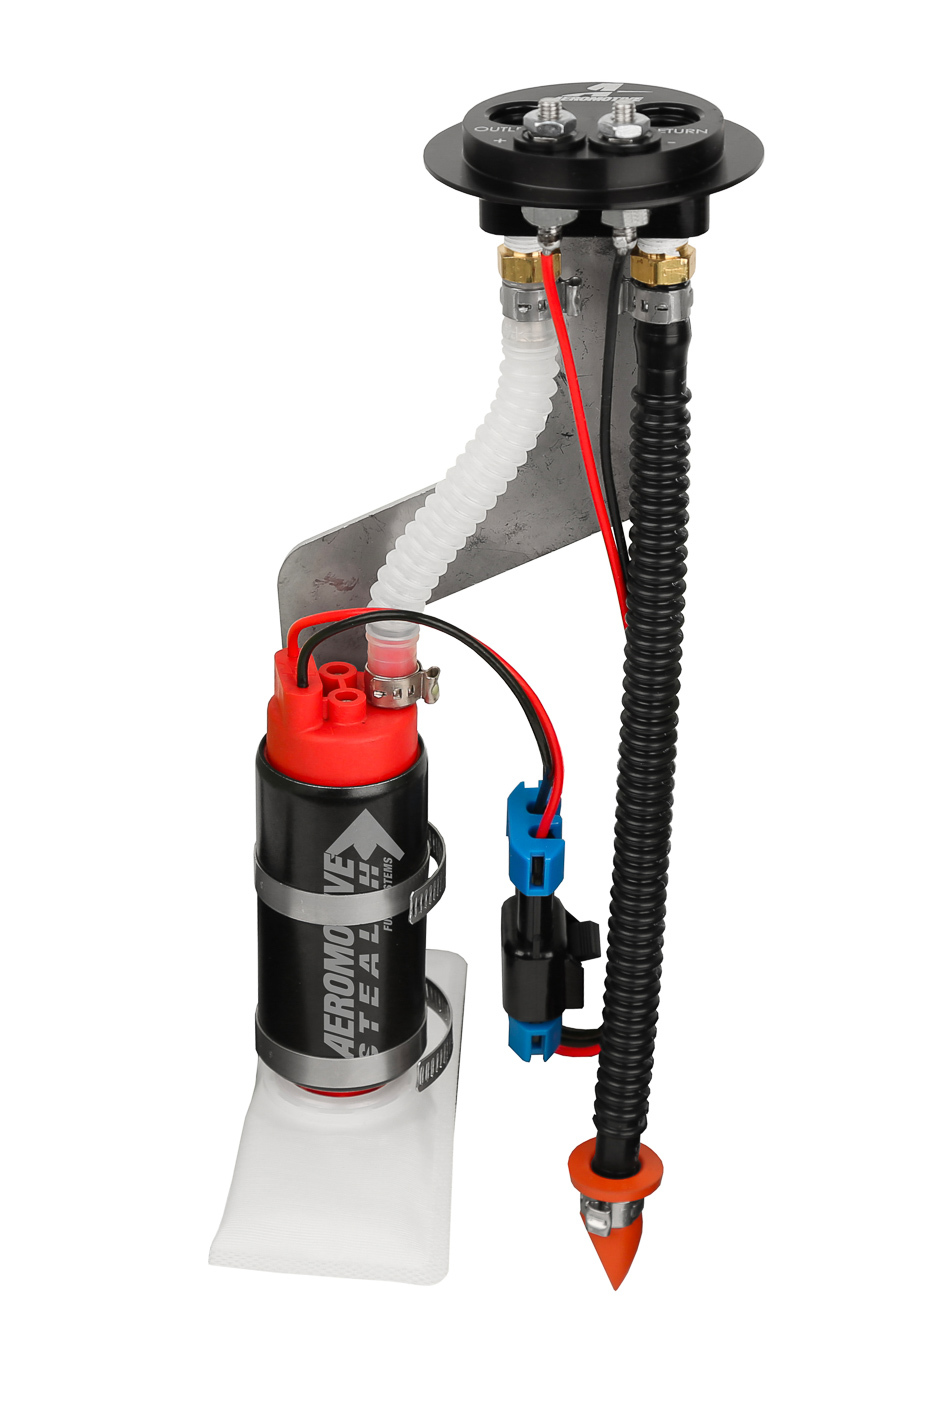 Aeromotive 18638 Fuel Pump, 340 Stealth, Electric, In-Tank, 340 lph at 45 psi, Hanger, Direct Fit, Ford Mustang 1983-97, Kit